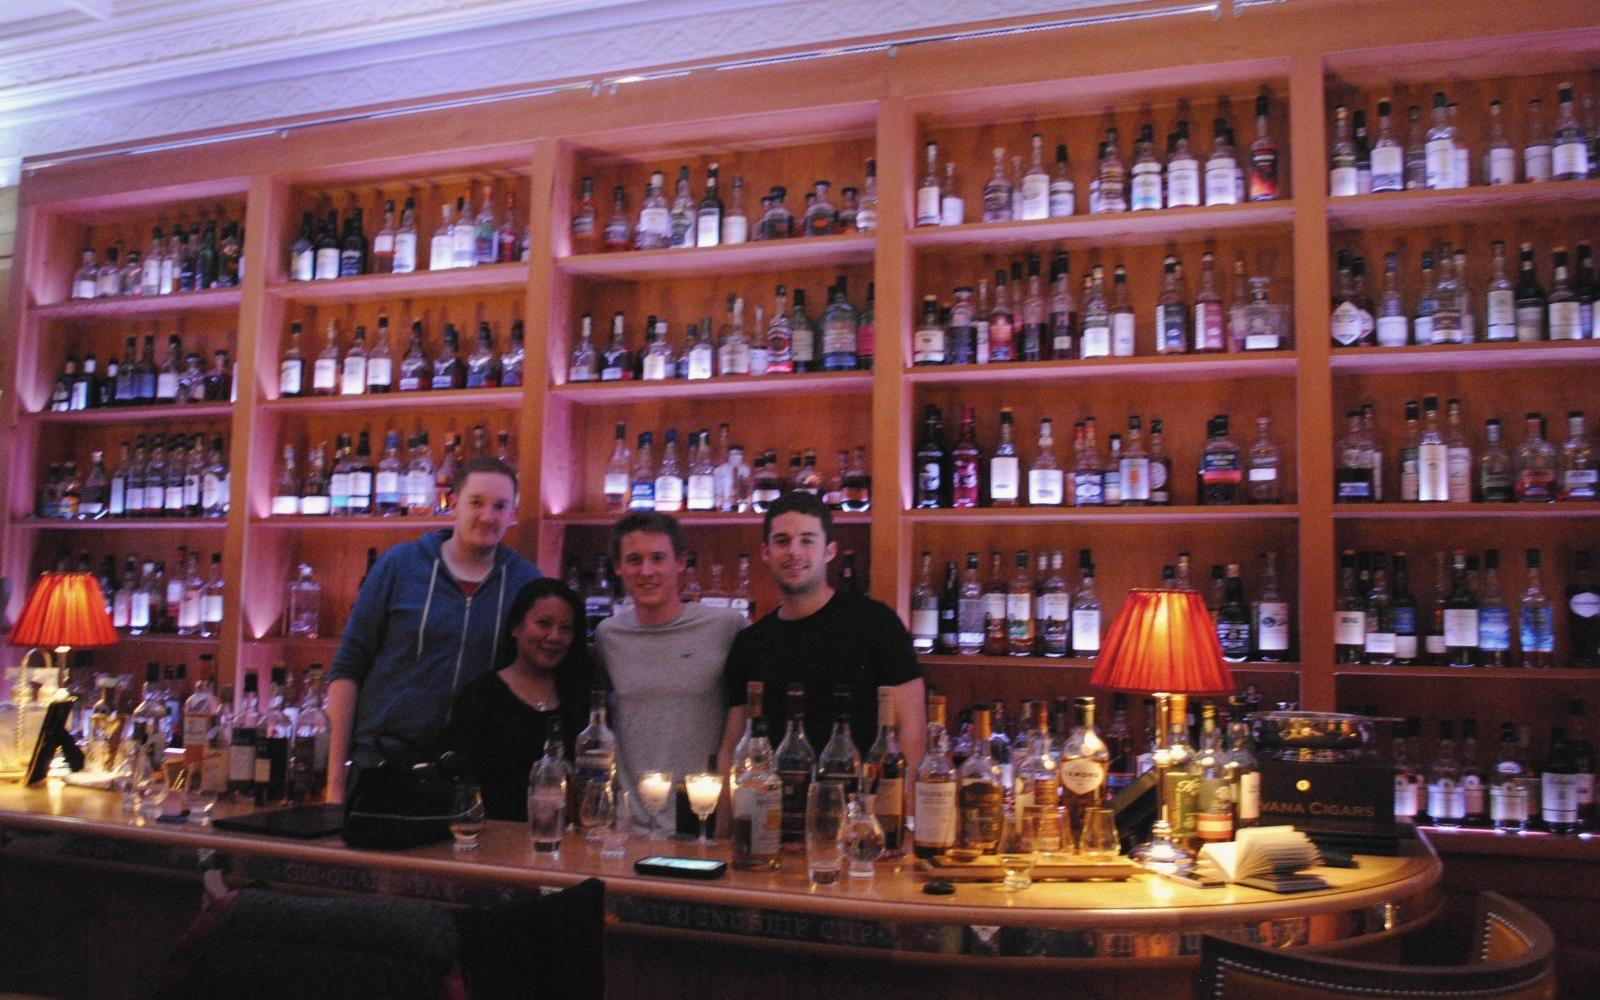 Whisky tastes better when it is enjoyed with people who share a passion for the drink.